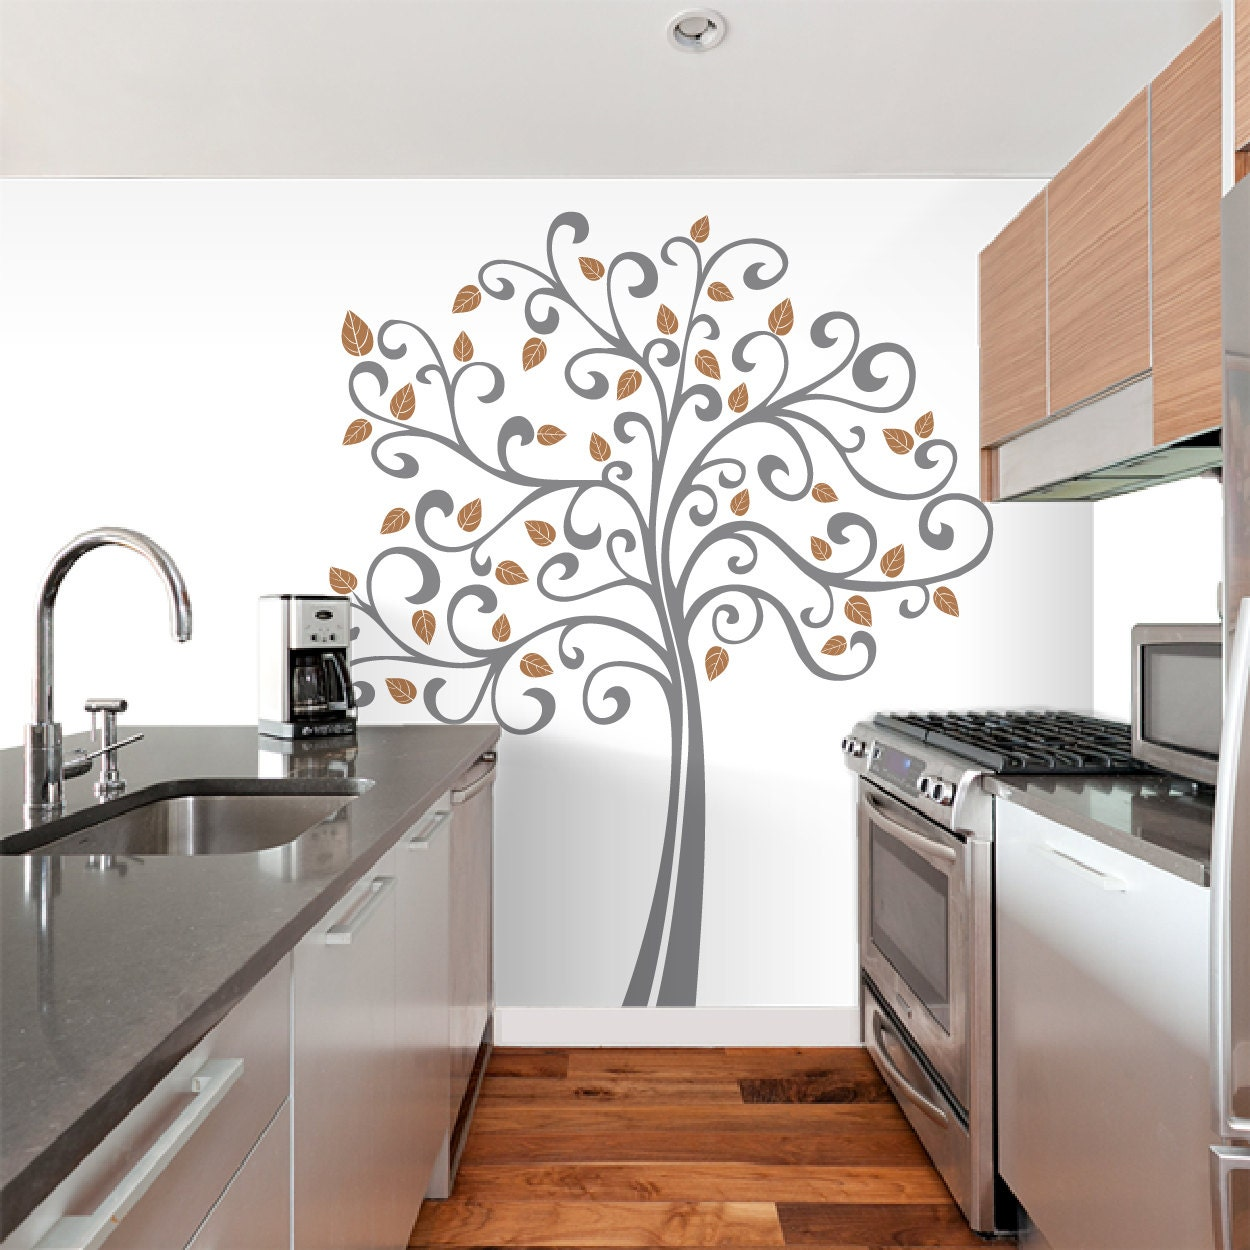 Elegant 7 Ft. Large Curly Tree Wall Decal Deco Art Sticker Mural   FREE SHIPPING! Conception Etonnante